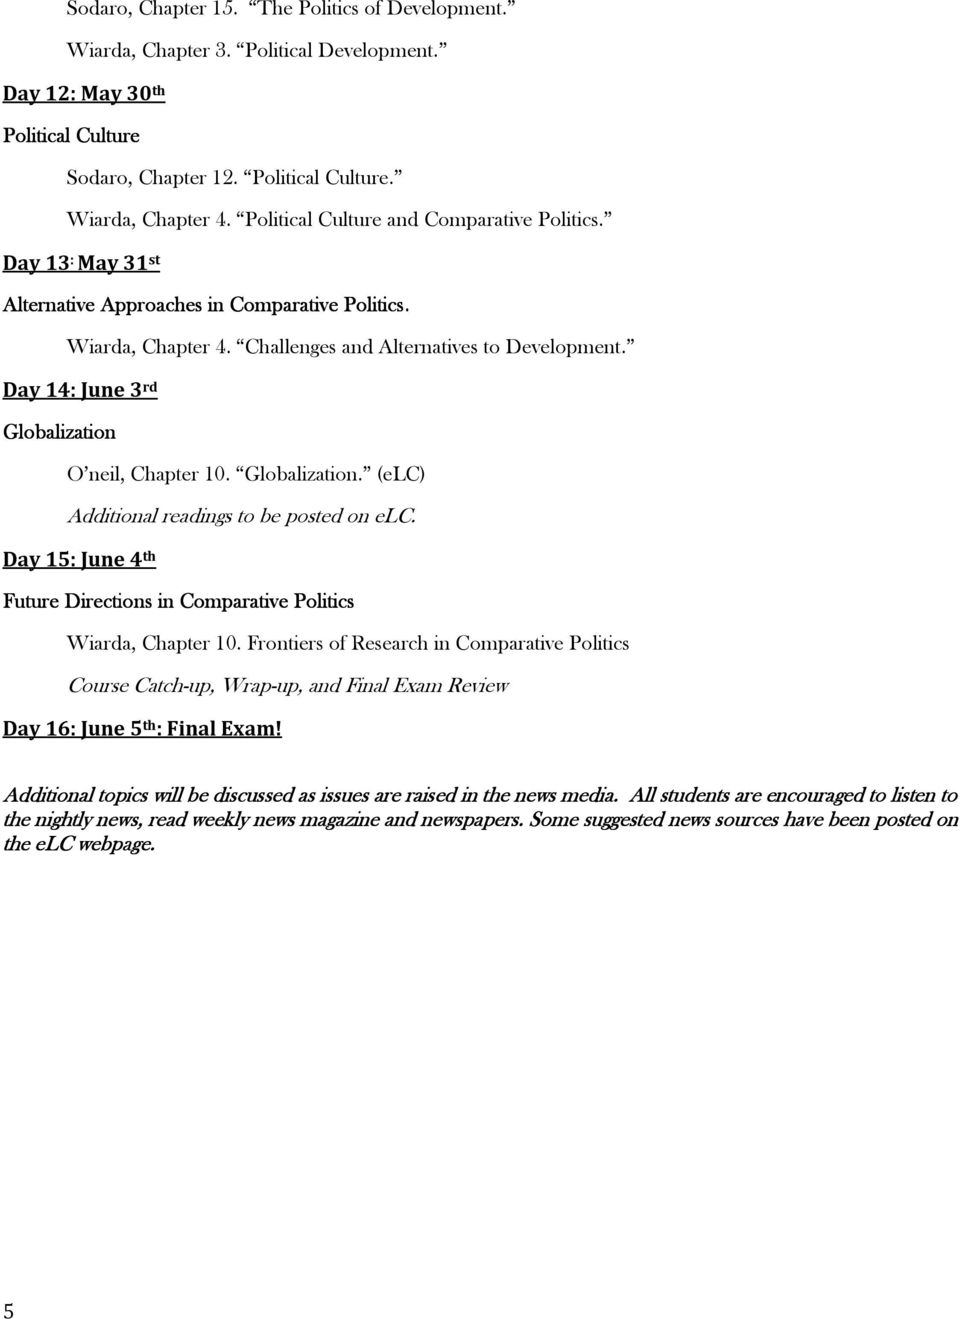 comparative politics research topics